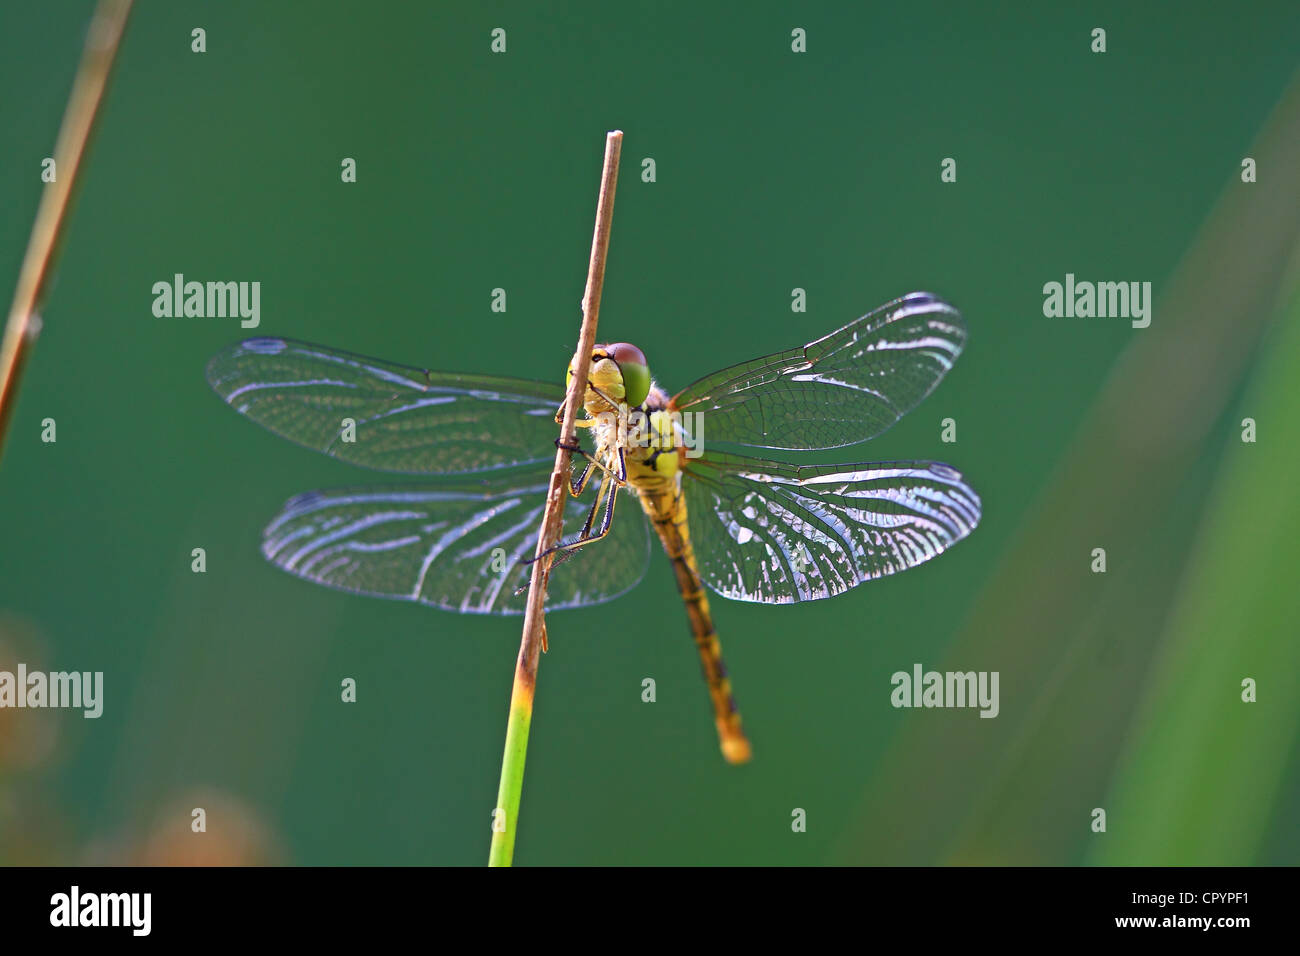 Exemple de jeunes Four-spotted Chaser (Libellula quadrimaculata), dragonfly Photo Stock